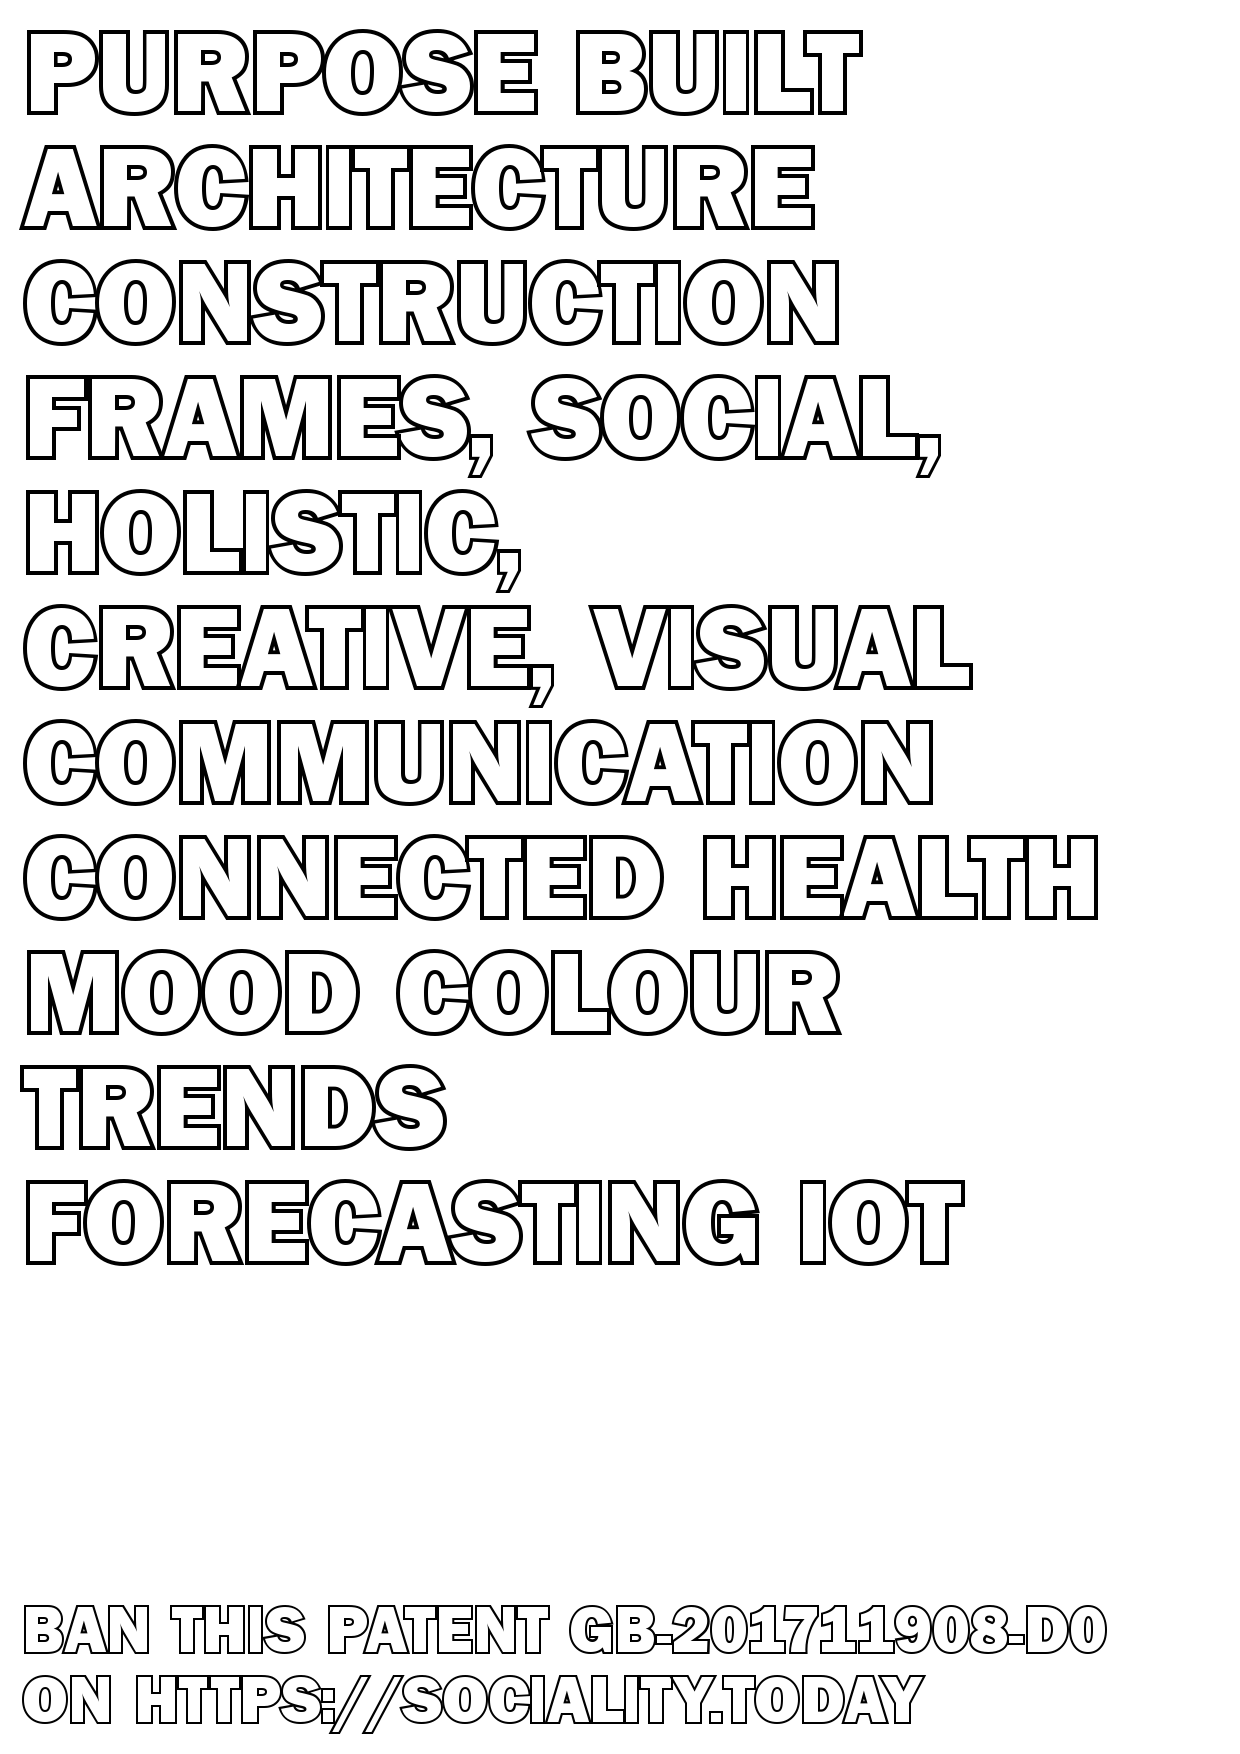 Purpose built architecture construction frames, social, holistic, creative, visual communication connected health mood colour trends forecasting IOT  - GB-201711908-D0